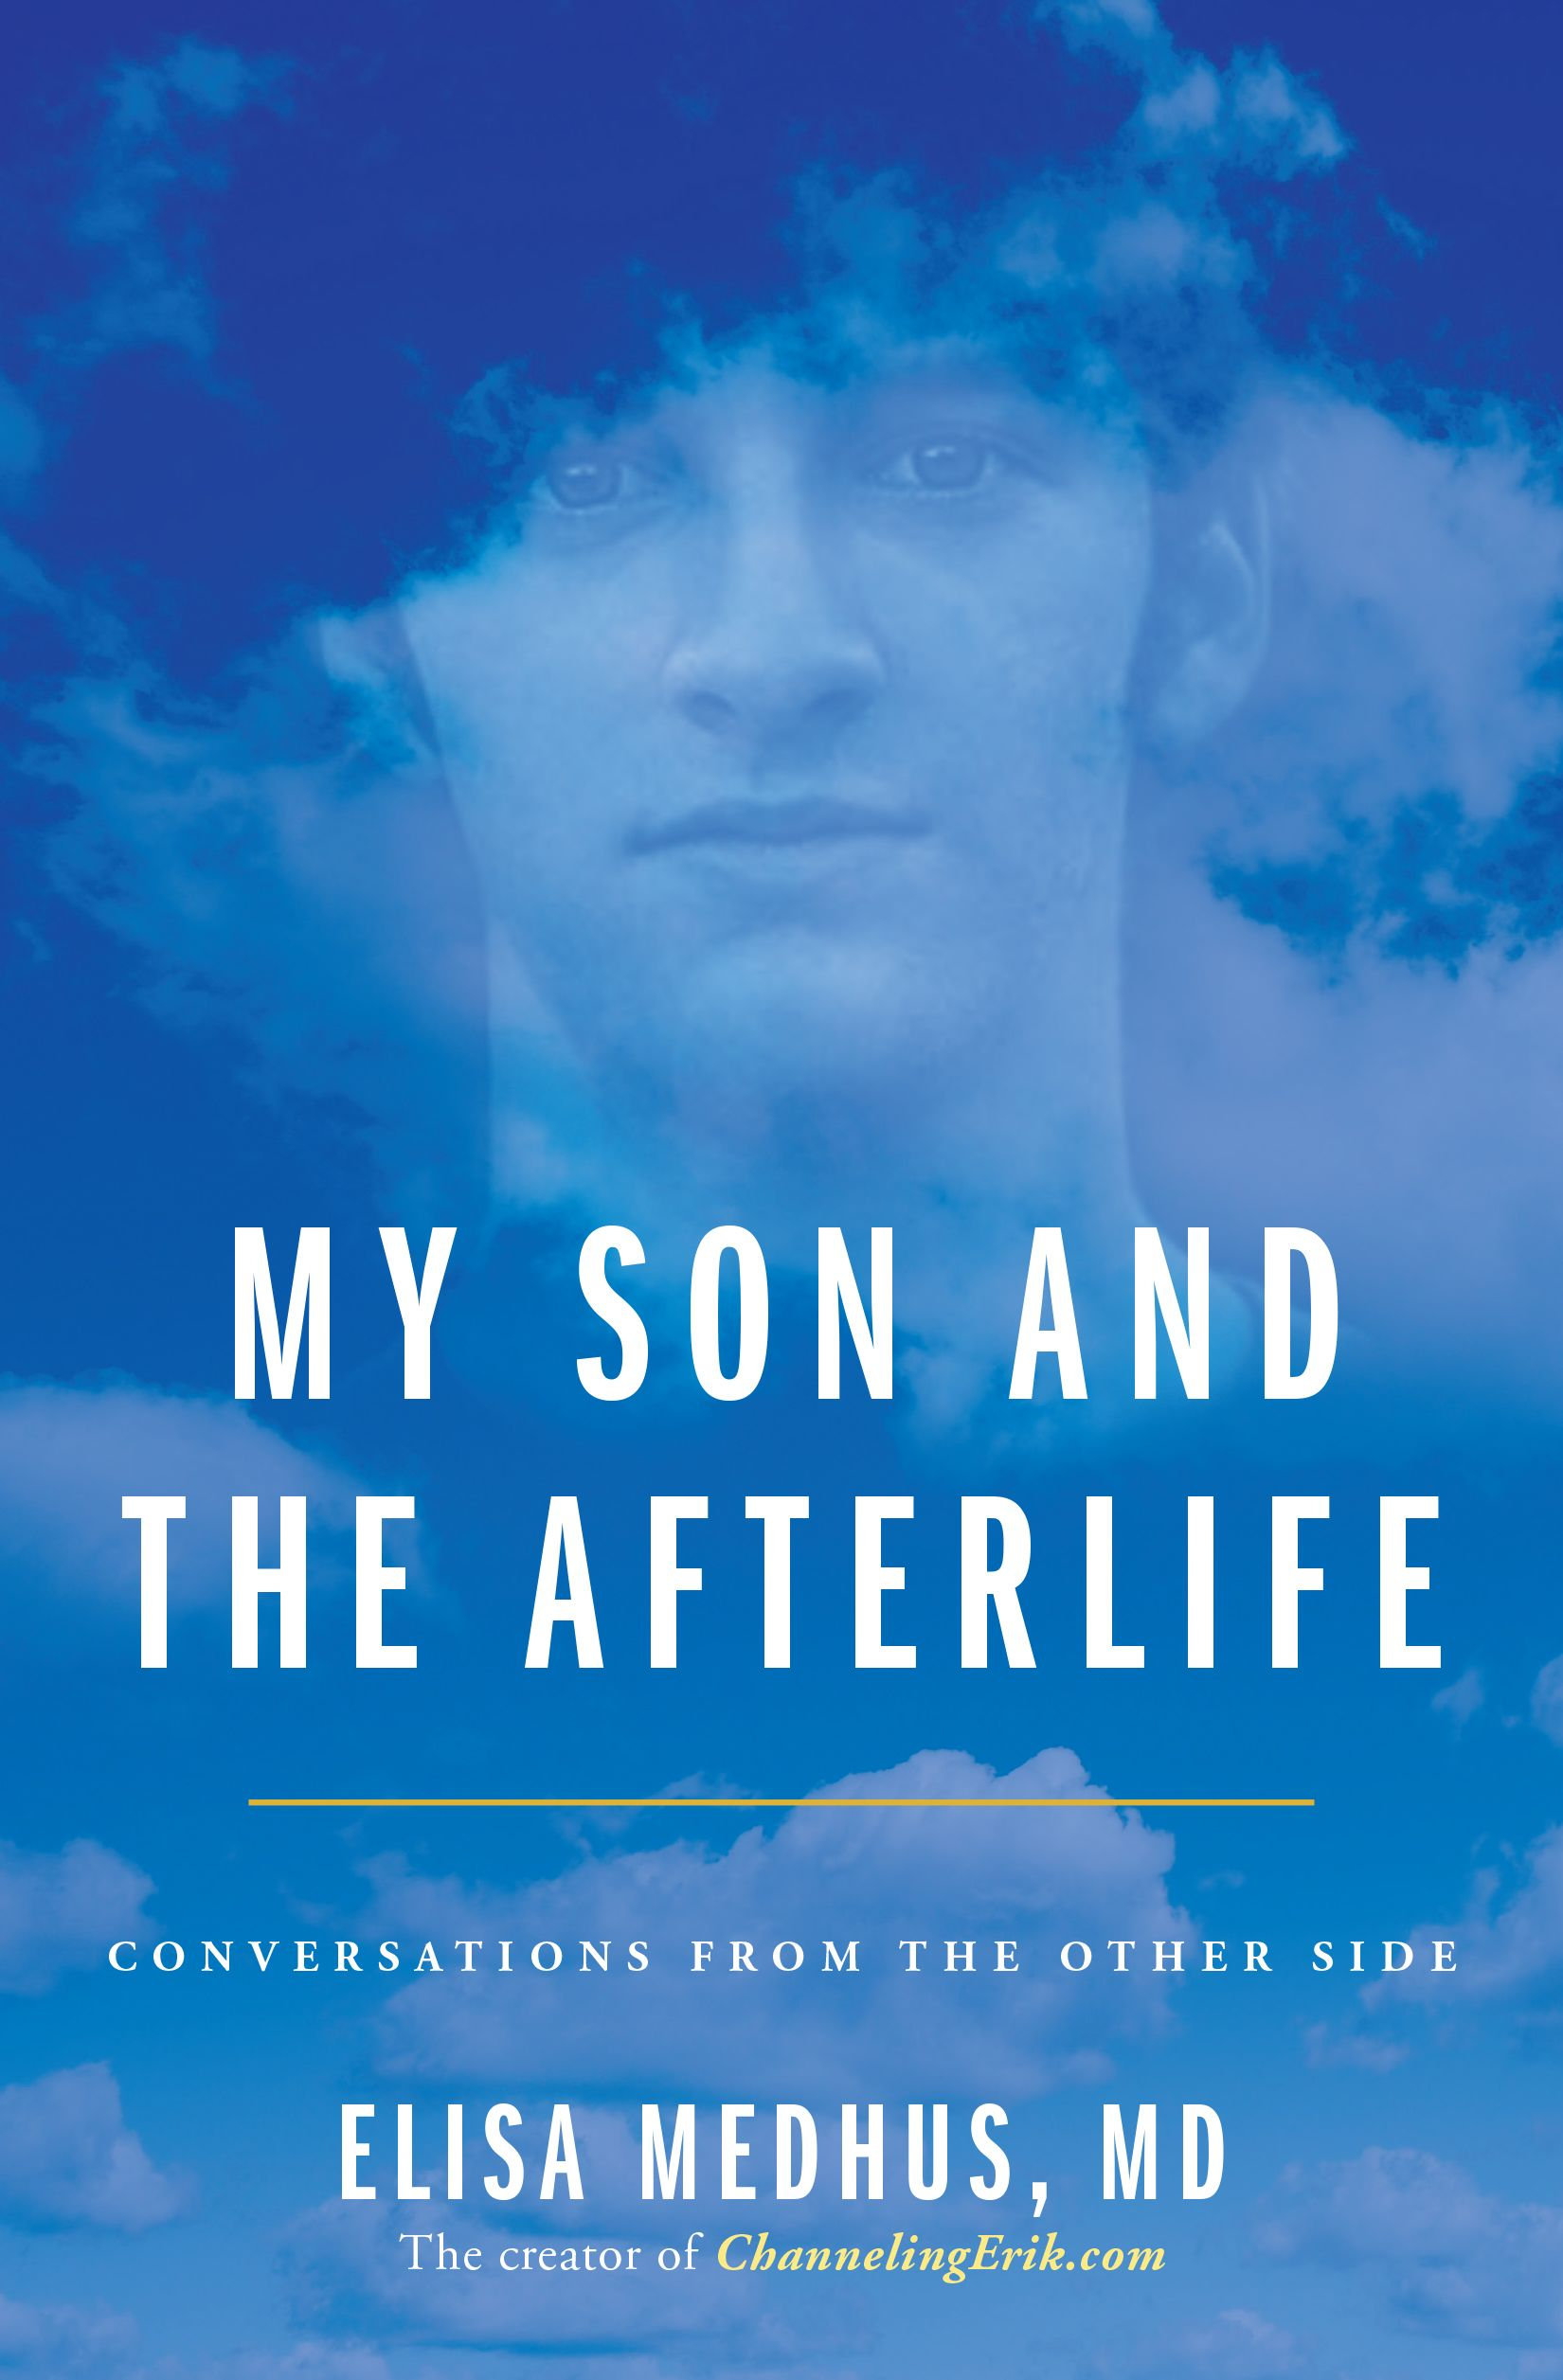 My life after death my son and the afterlife